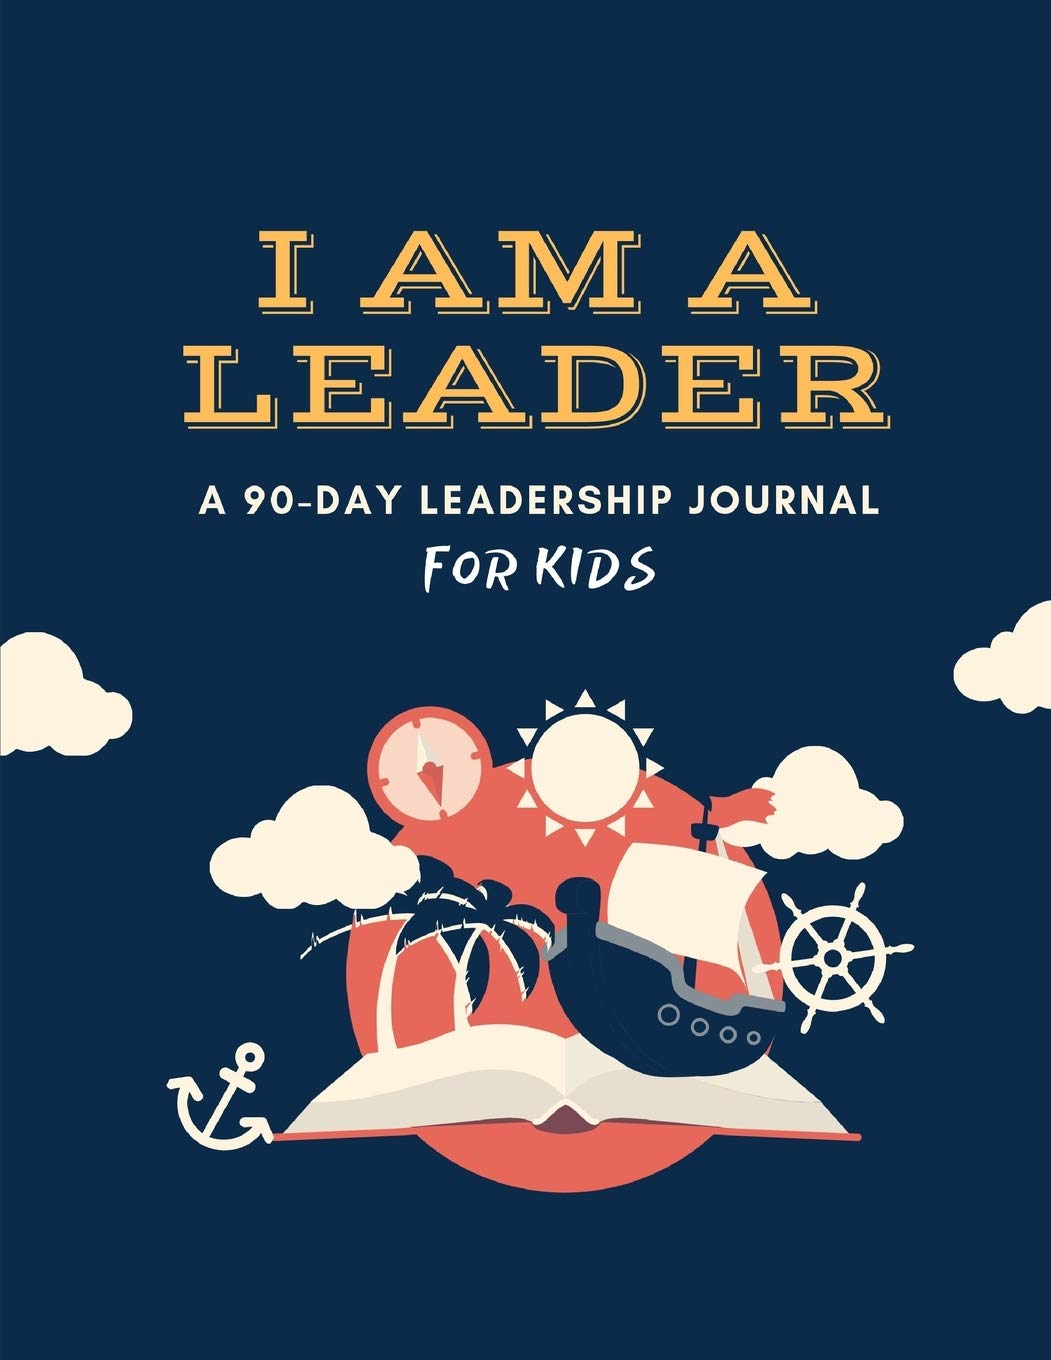 Image OfI AM A LEADER: A 90-Day Leadership Journal For Kids (Ages 8 - 12)